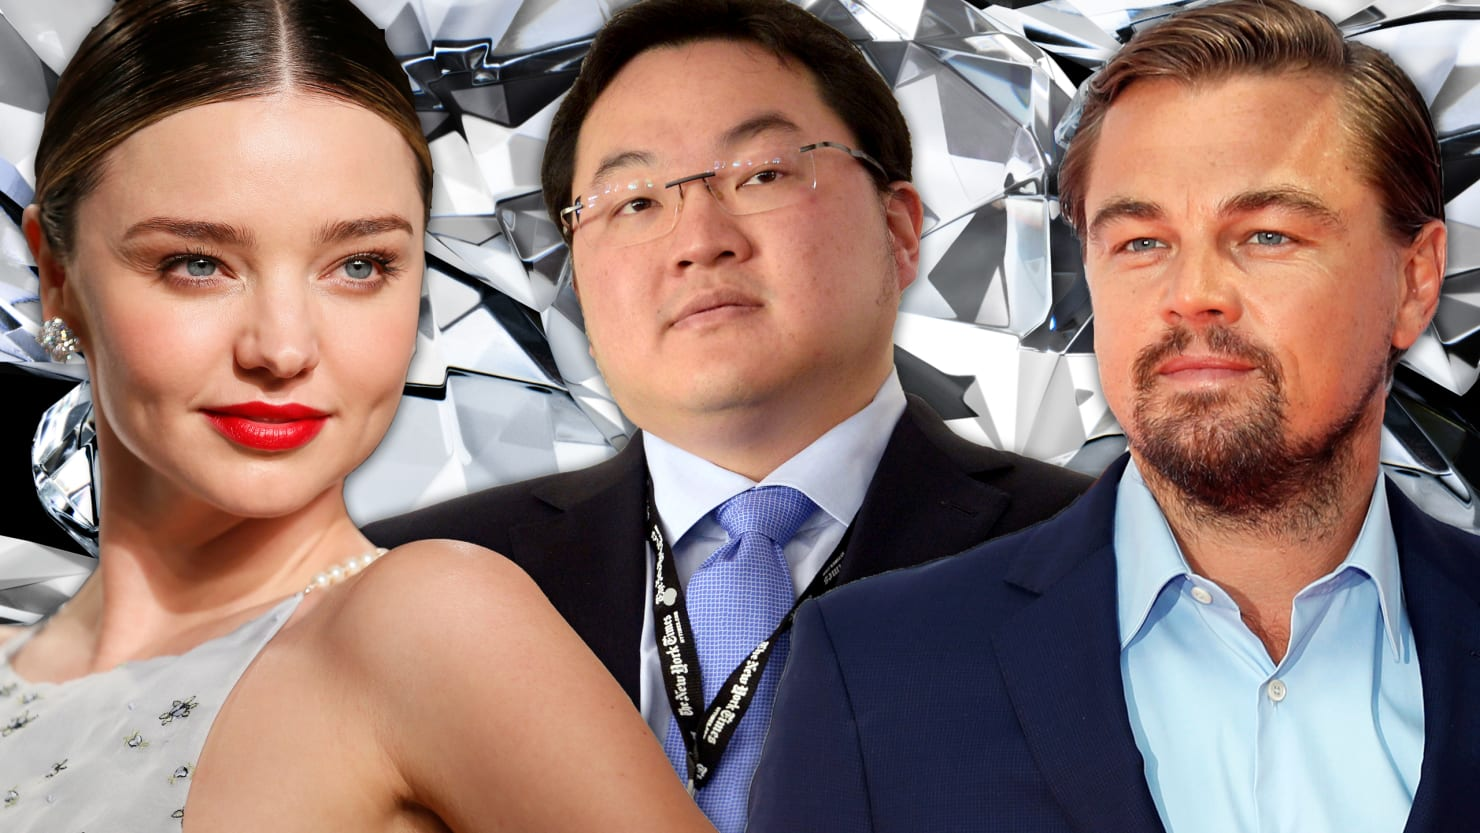 Is Miranda Kerr Dating Leonardo Dicaprio